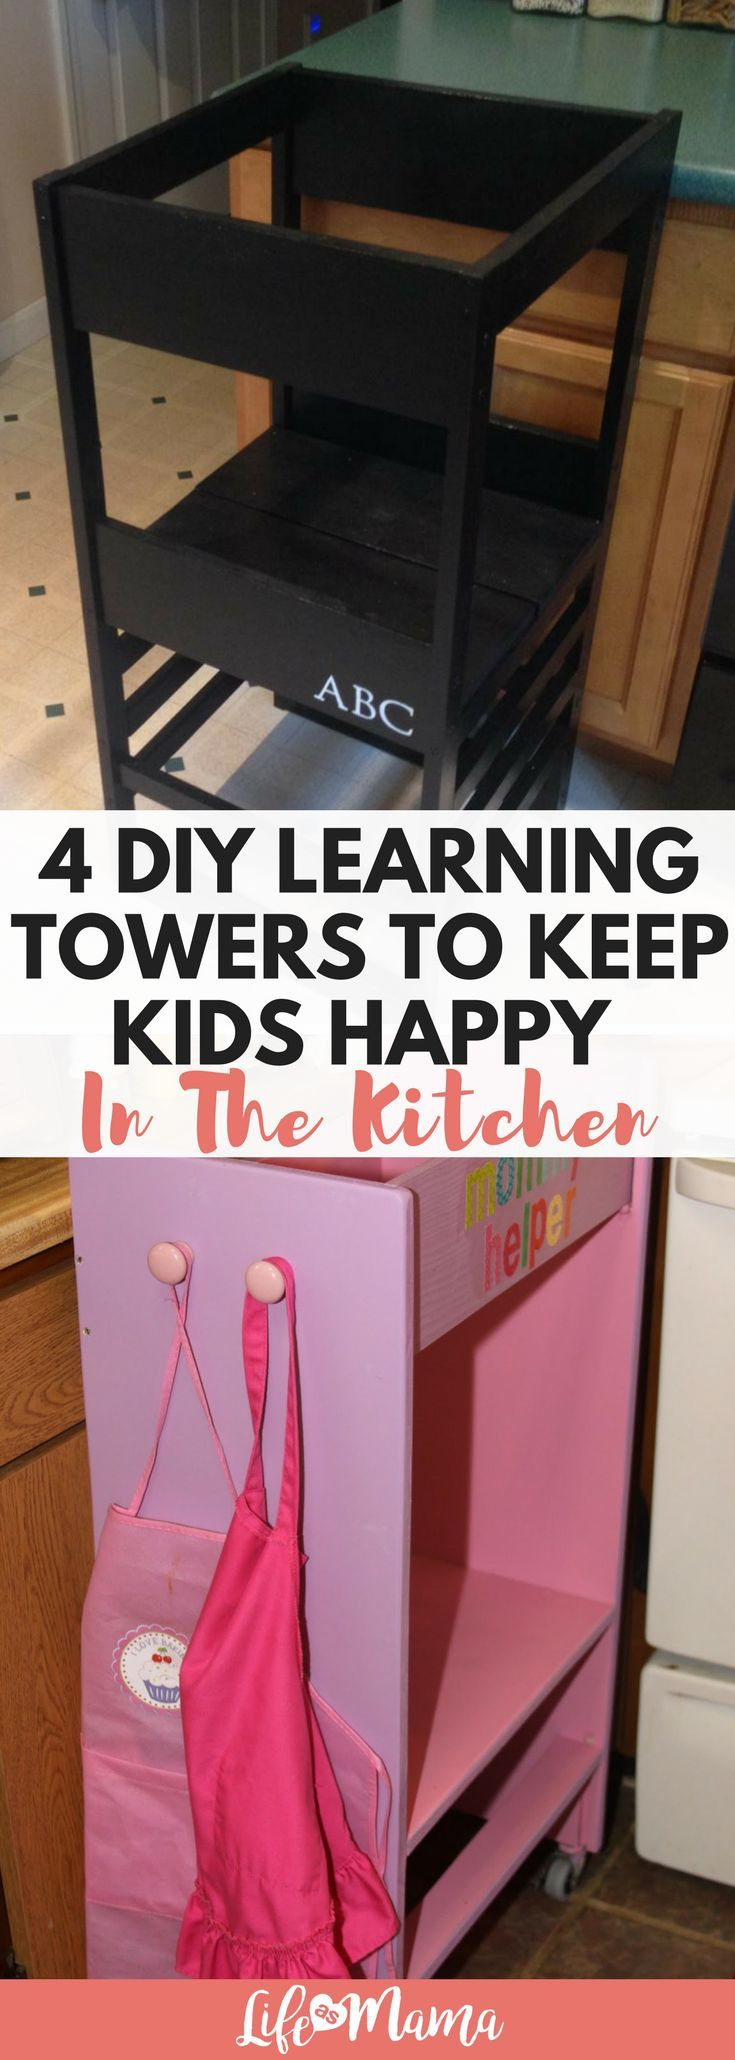 diy learning towers to keep kids happy in the kitchen fun things